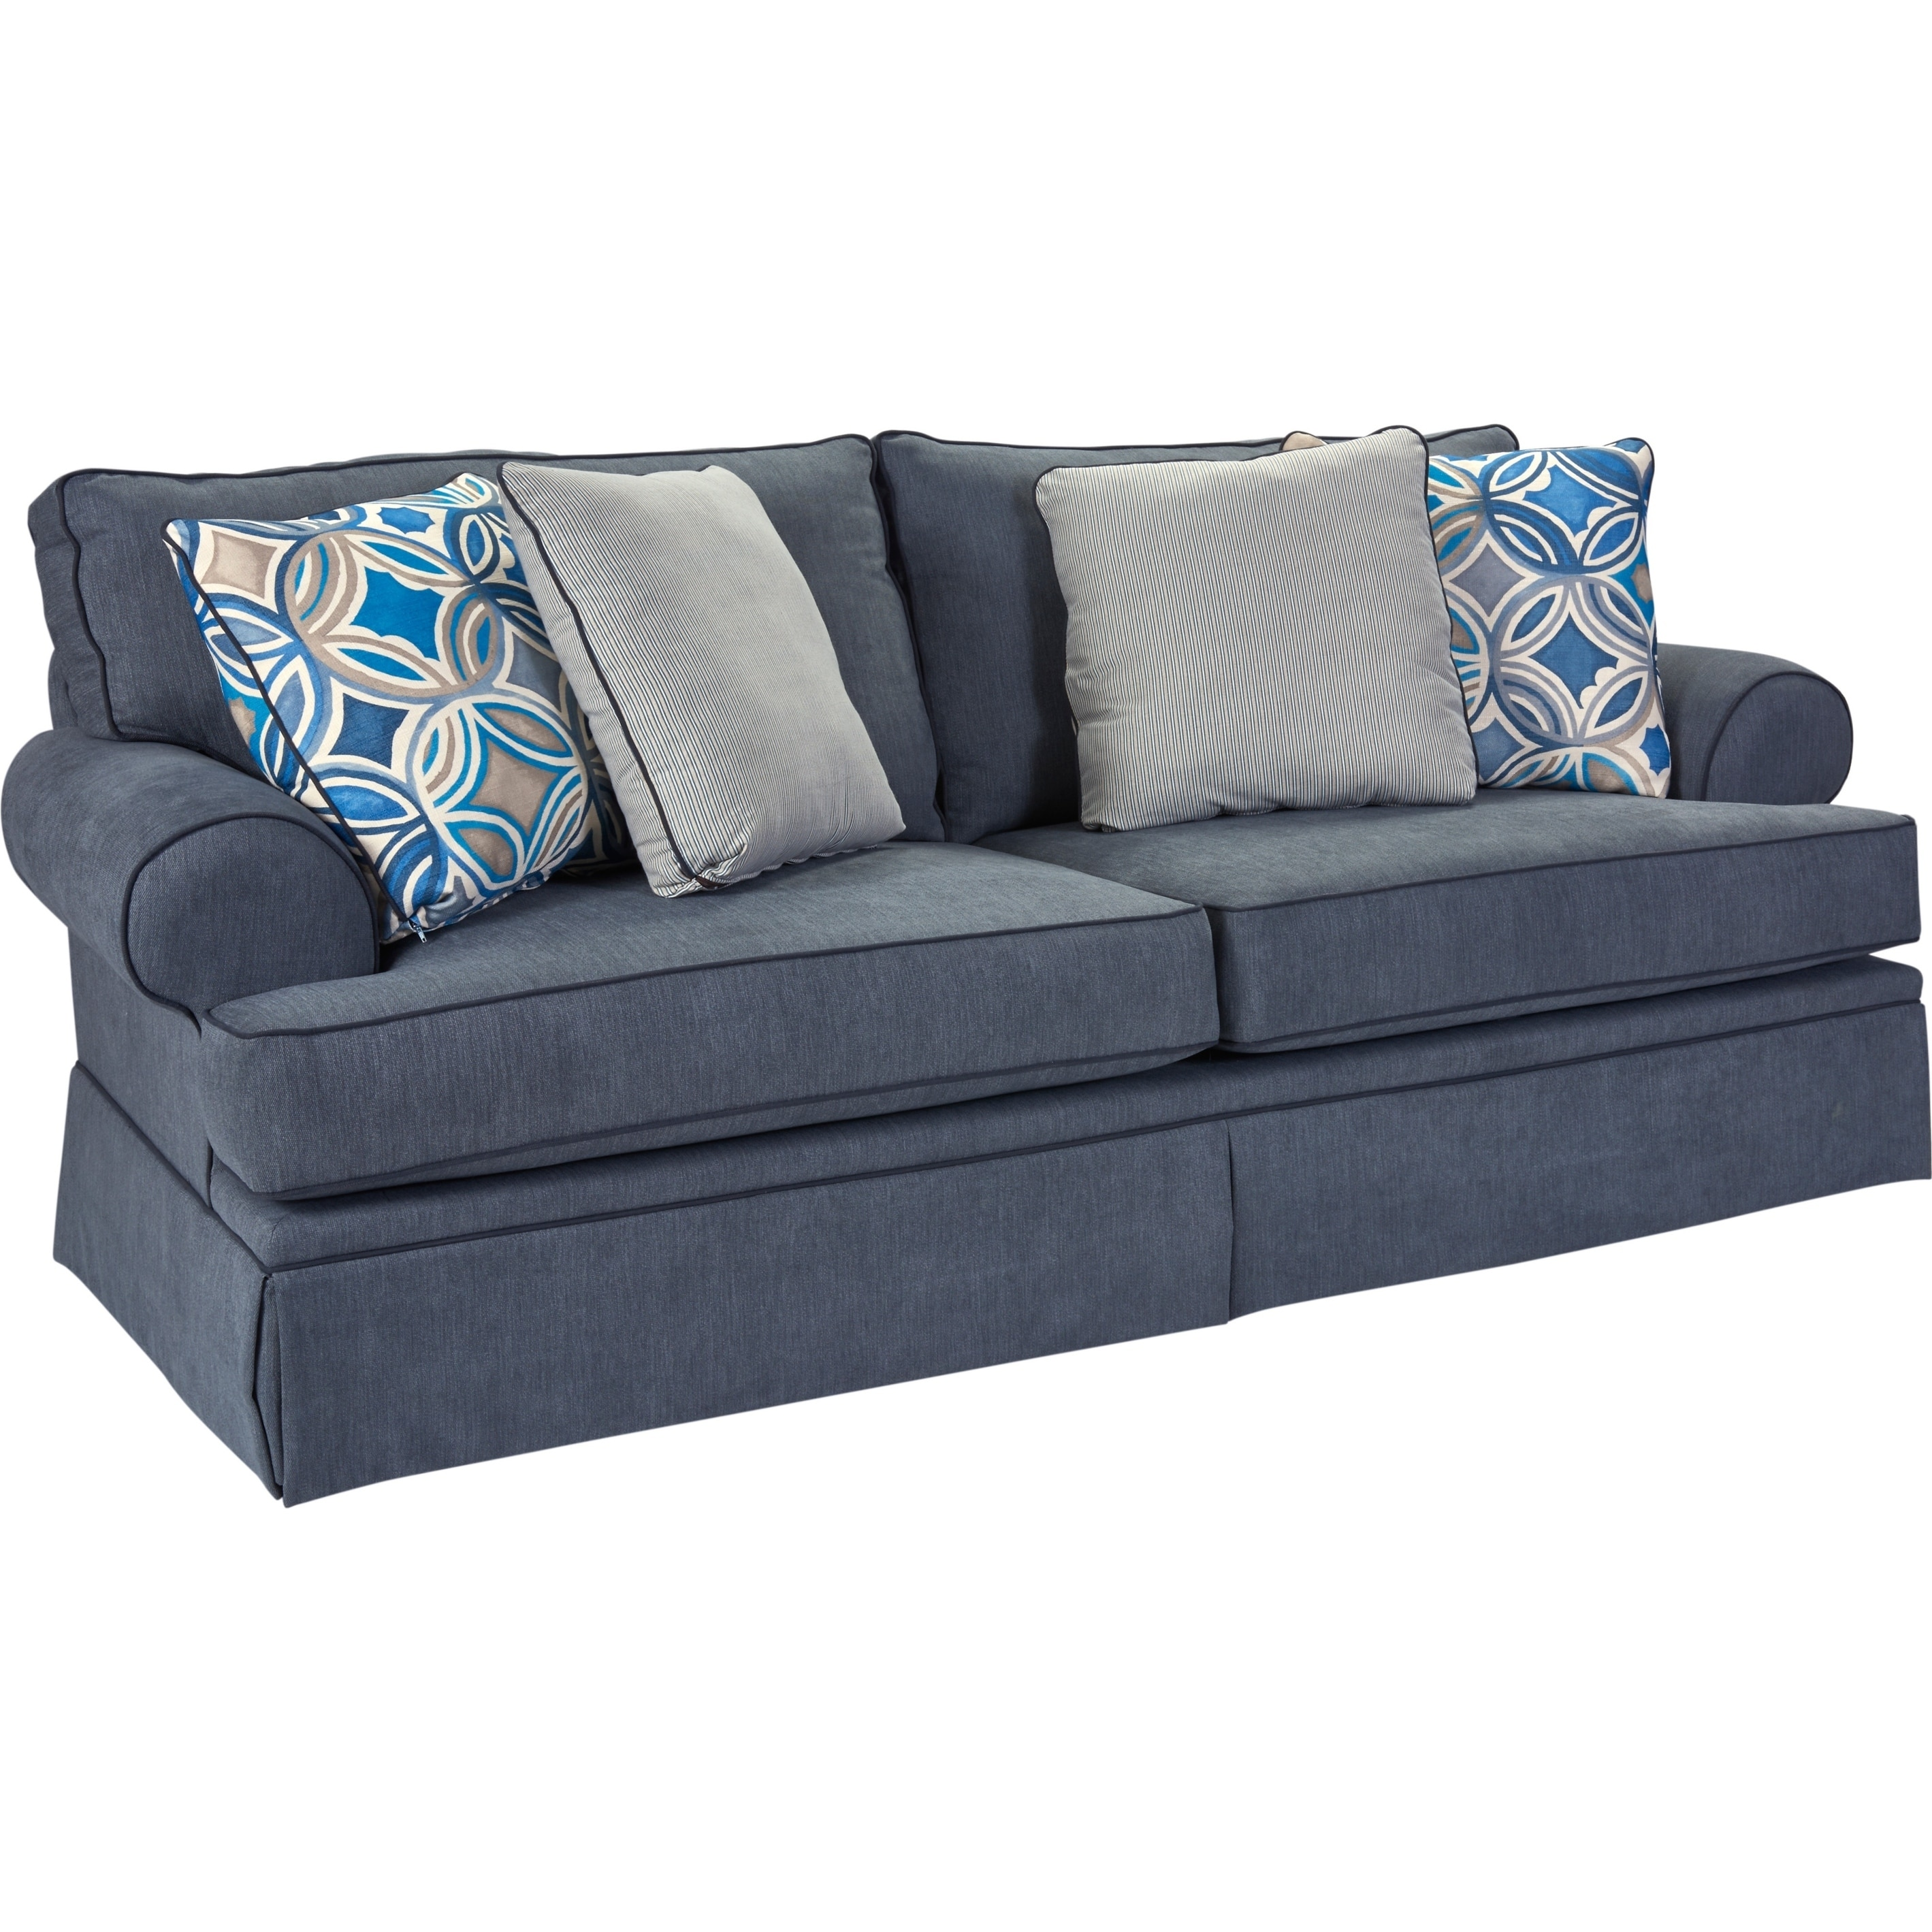 Shop Broyhill Emily Sofa In Blue   Free Shipping Today   Overstock.com    12330359